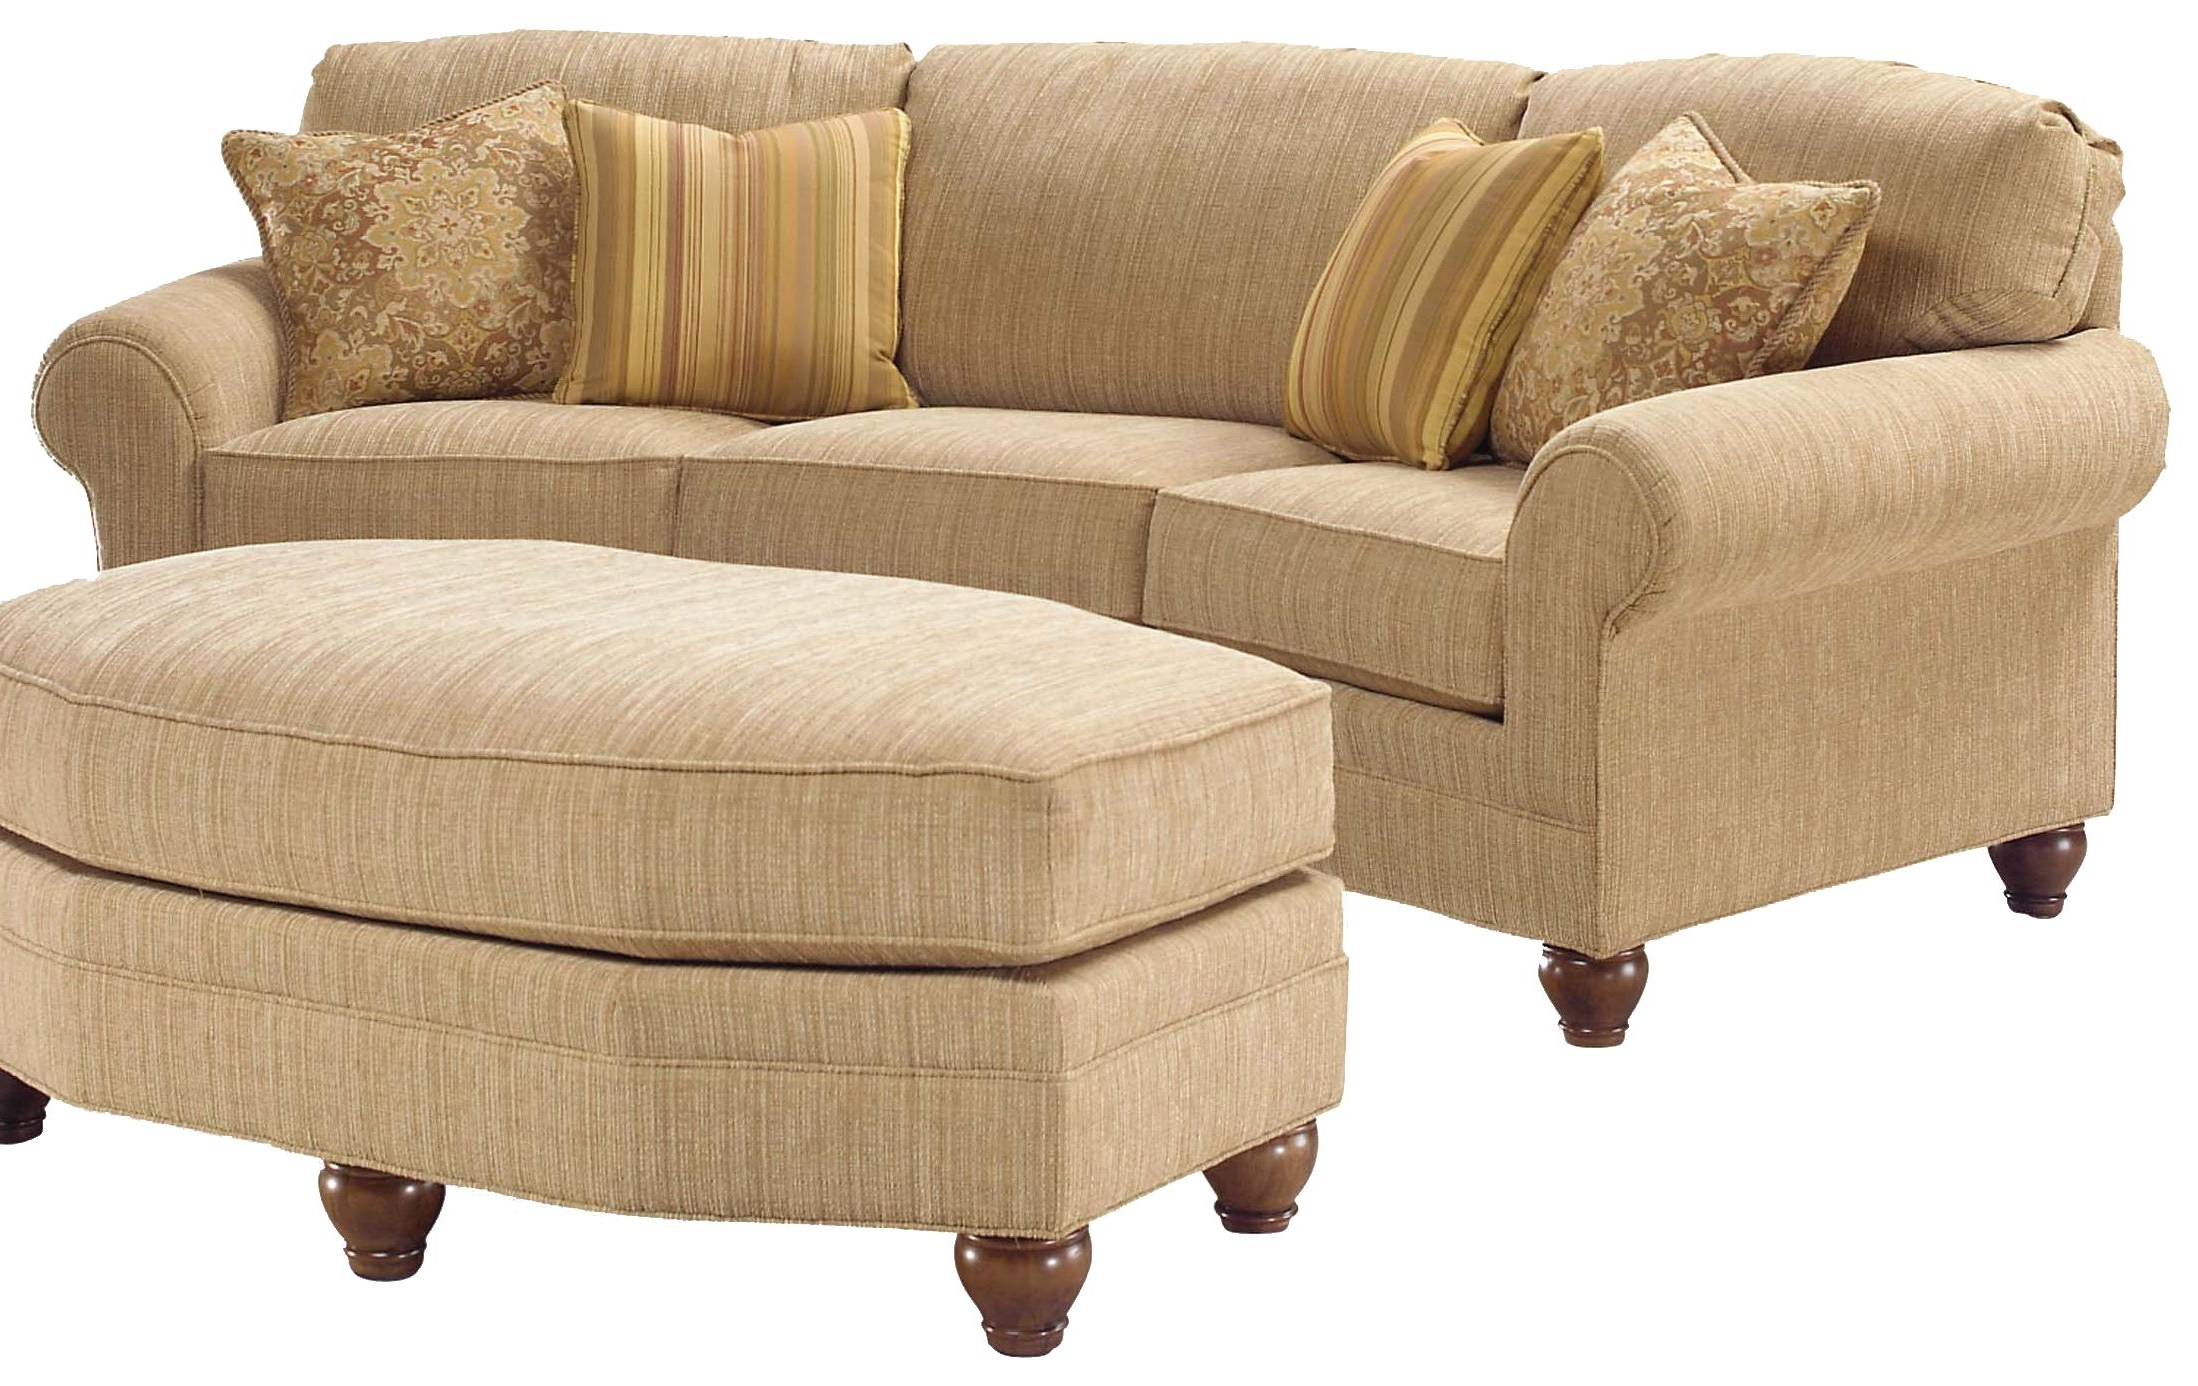 Olinde's Furniture Regarding Best And Newest Curved Recliner Sofas (View 15 of 20)